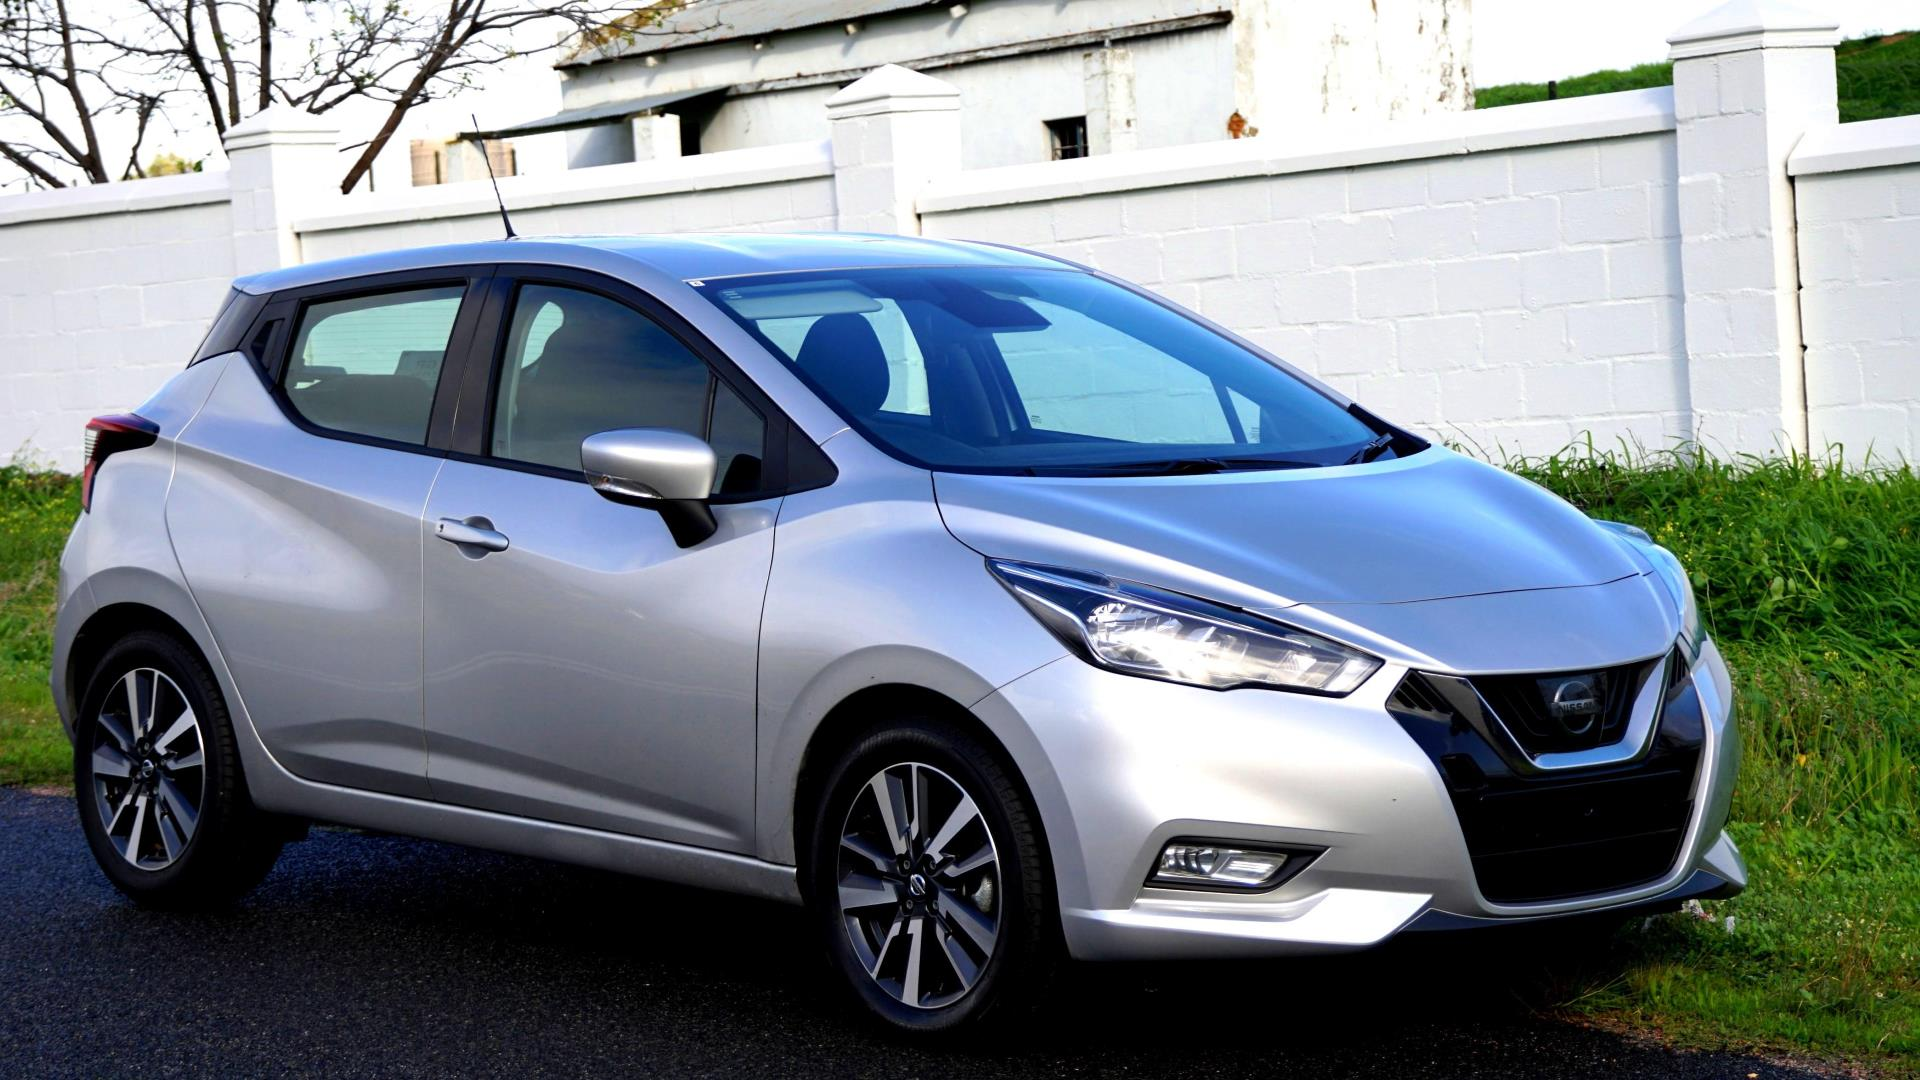 Top Six Differences Between The Old And The New Nissan Micra Motoring News And Advice Autotrader